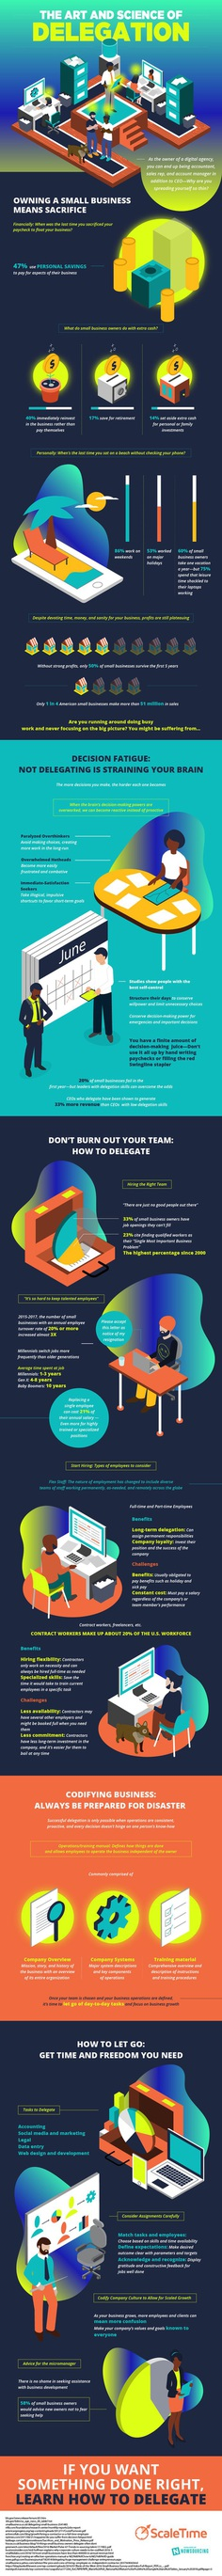 art and science of delegation infographic